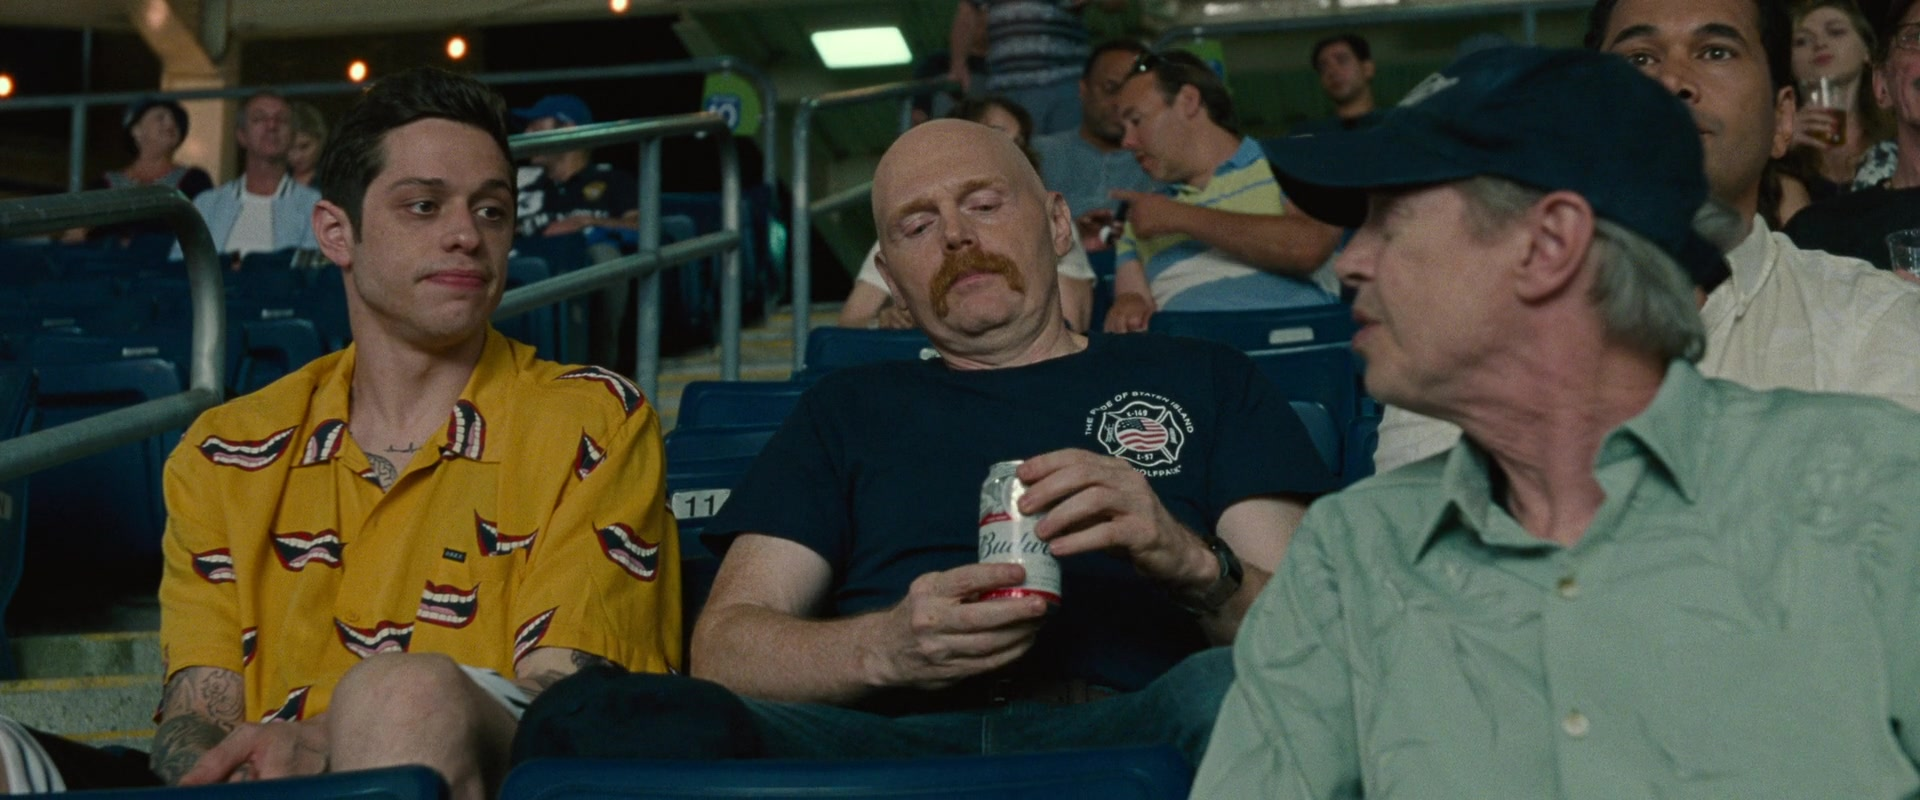 Budweiser Beer Enjoyed By Bill Burr In The King Of Staten Island 2020